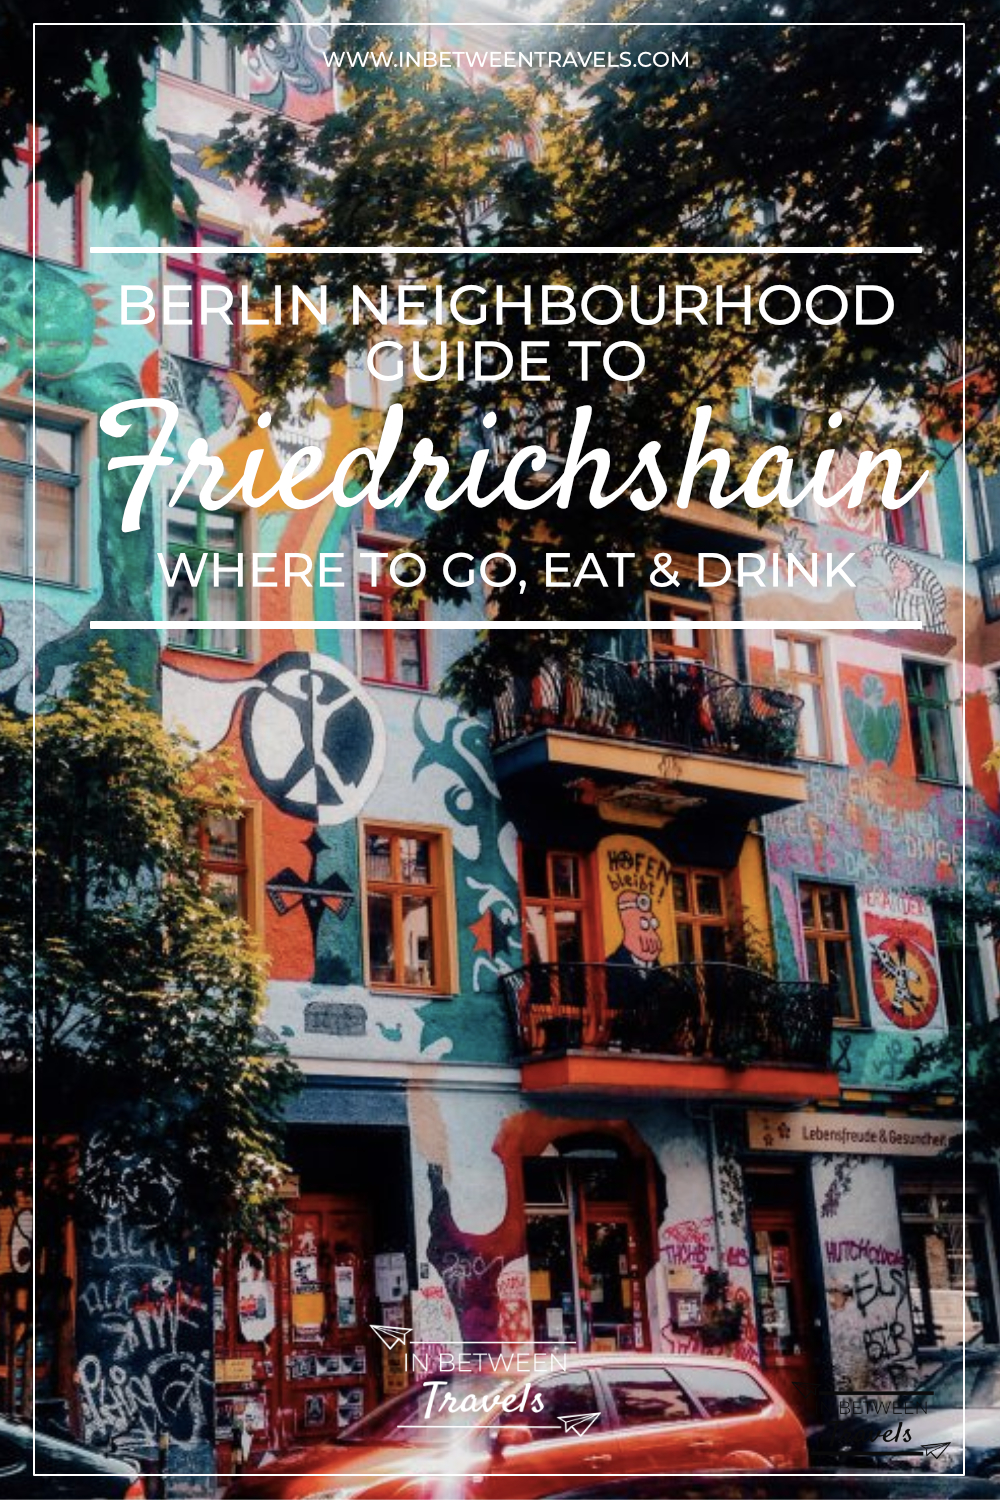 Berlin Neighbourhood Guide - Friedrichshain